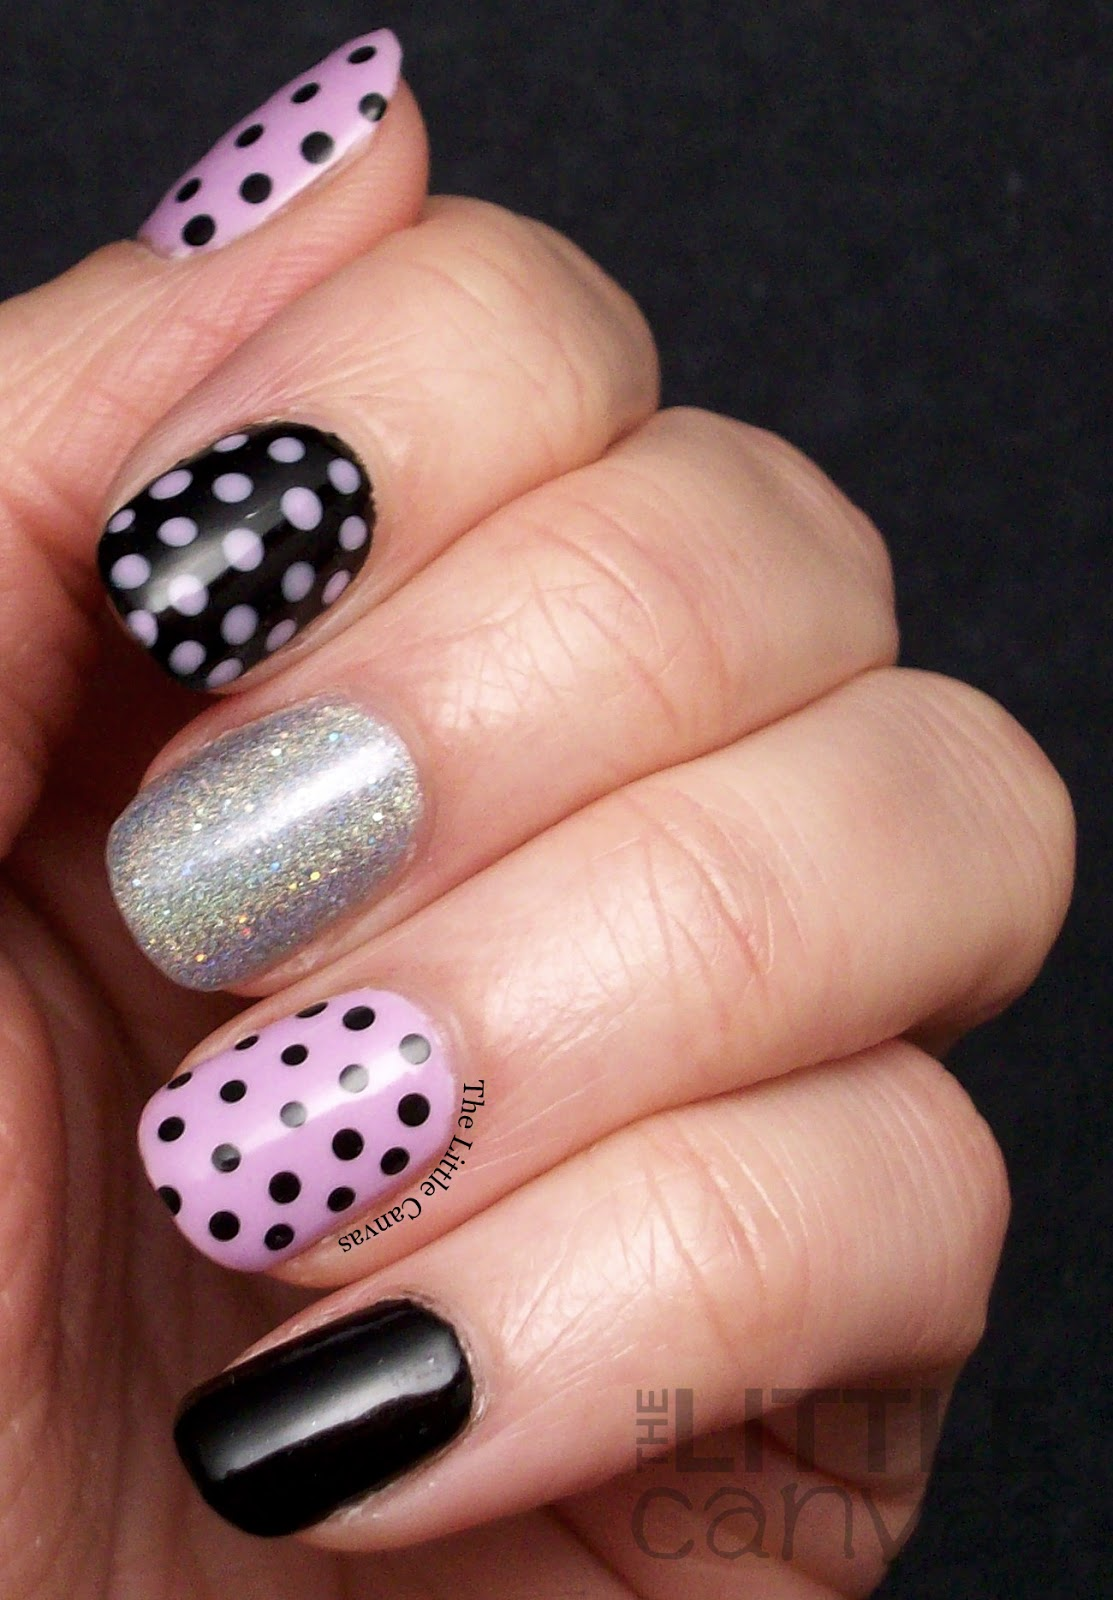 The One With the Dotticure and ORLY As Seen On TV - The Little Canvas